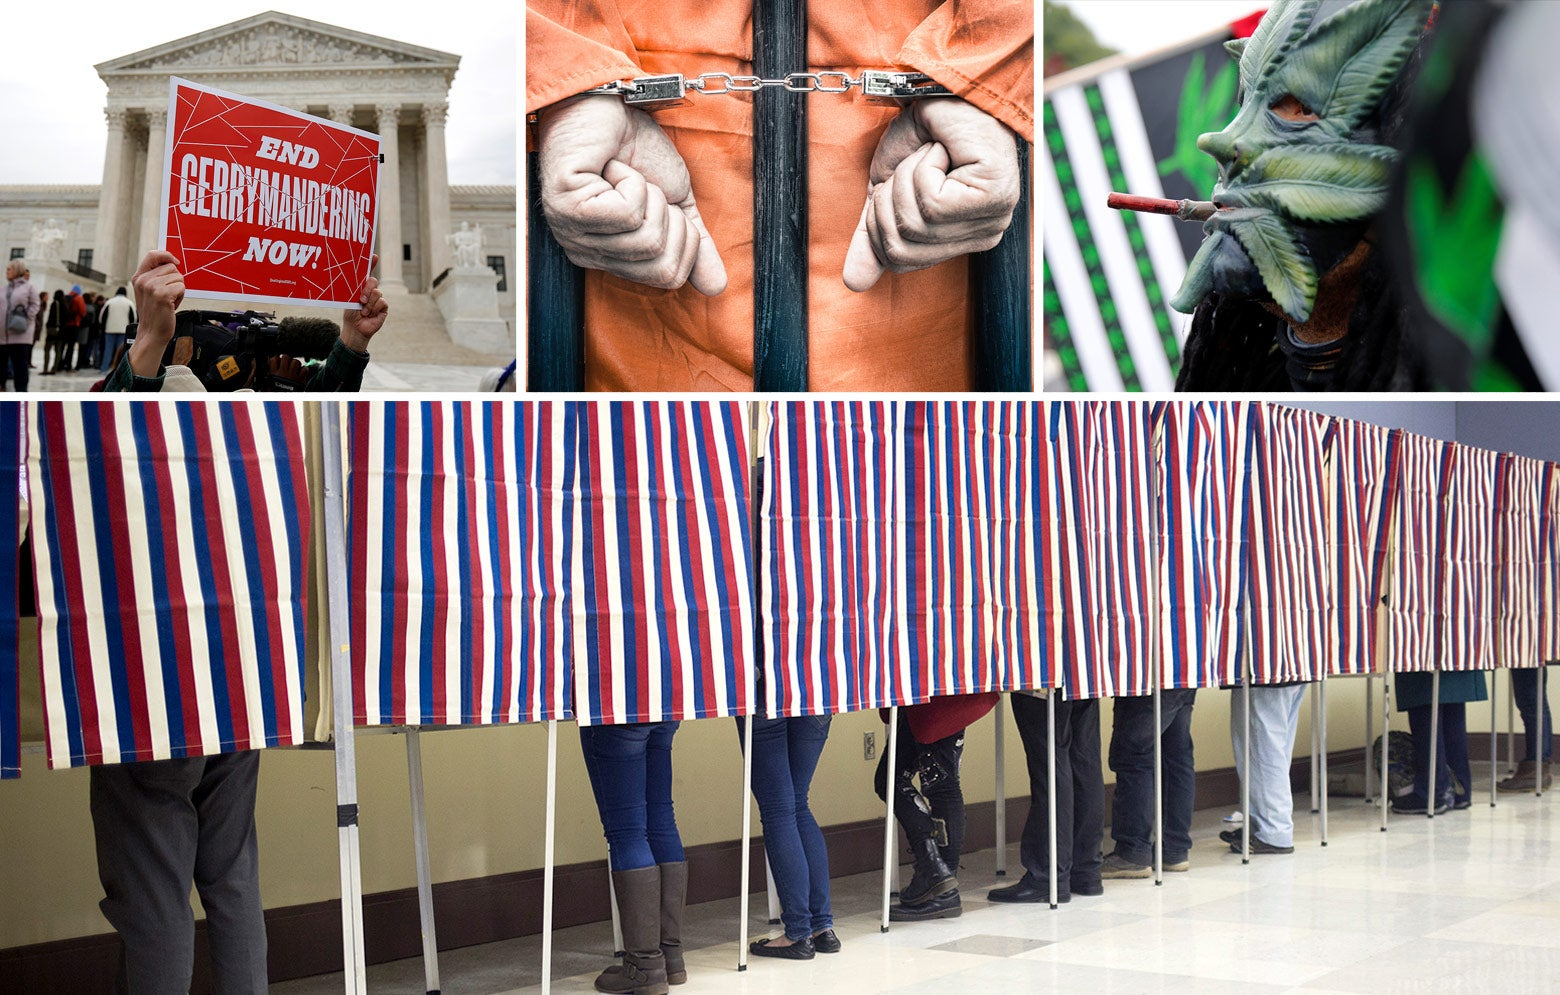 "Collage of a sign reading ""END GERRYMANDERING NOW!"" held up outside the Supreme Court, a prisoner's hands in handcuffs, a person wearing a marijuana leaf mask and smoking a joint, and a row of people in voting booths."